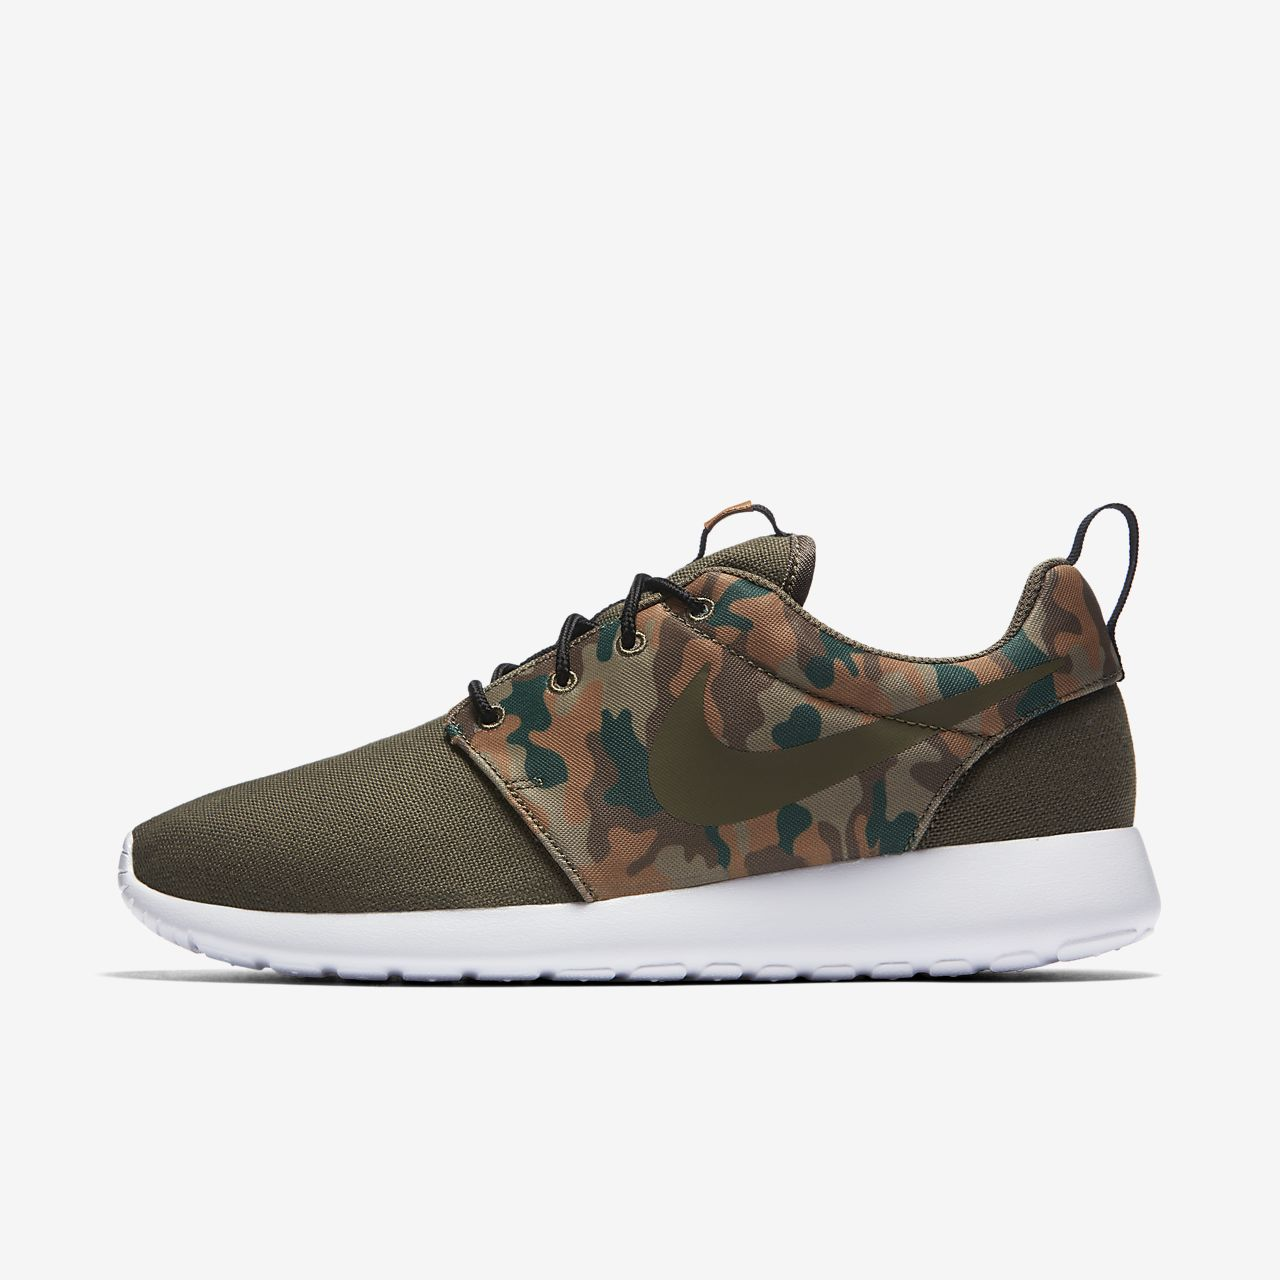 45b289eb77e42 Nike Roshe One SE Men s Shoe. Nike.com